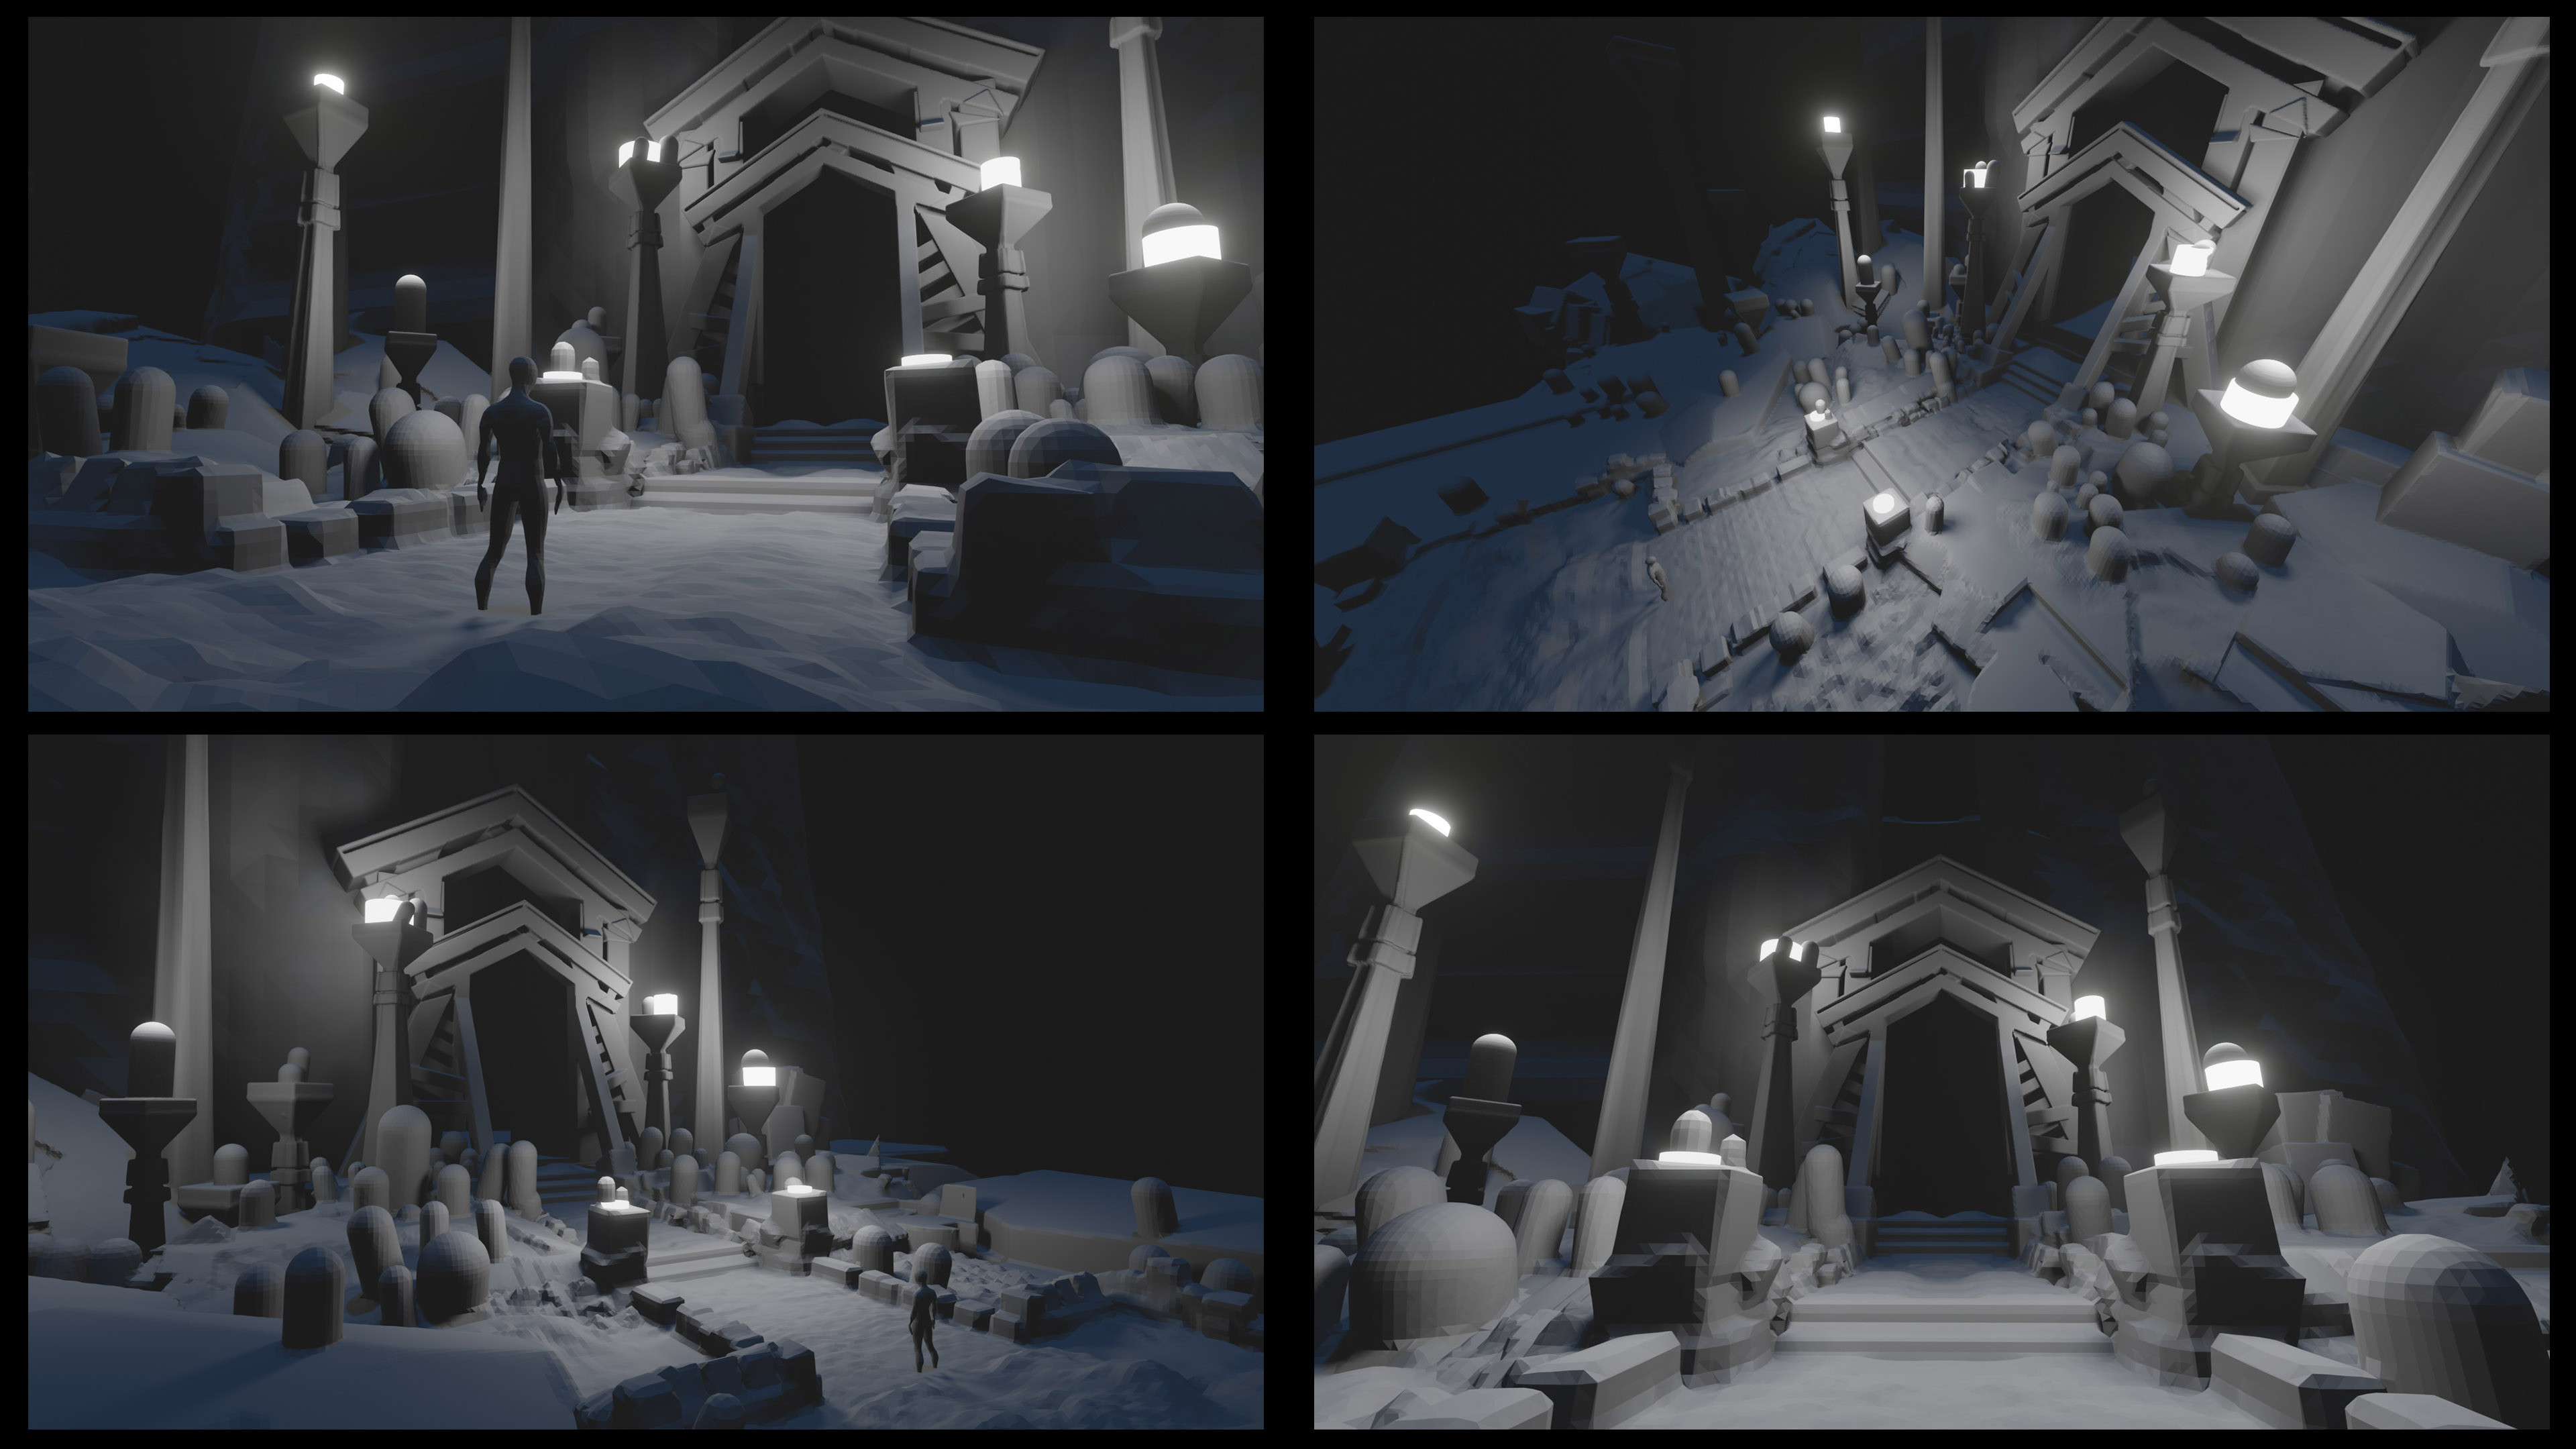 3DCoat and Blender were used for the initial blockout, explore lighting and shot options, and was then drawn over.